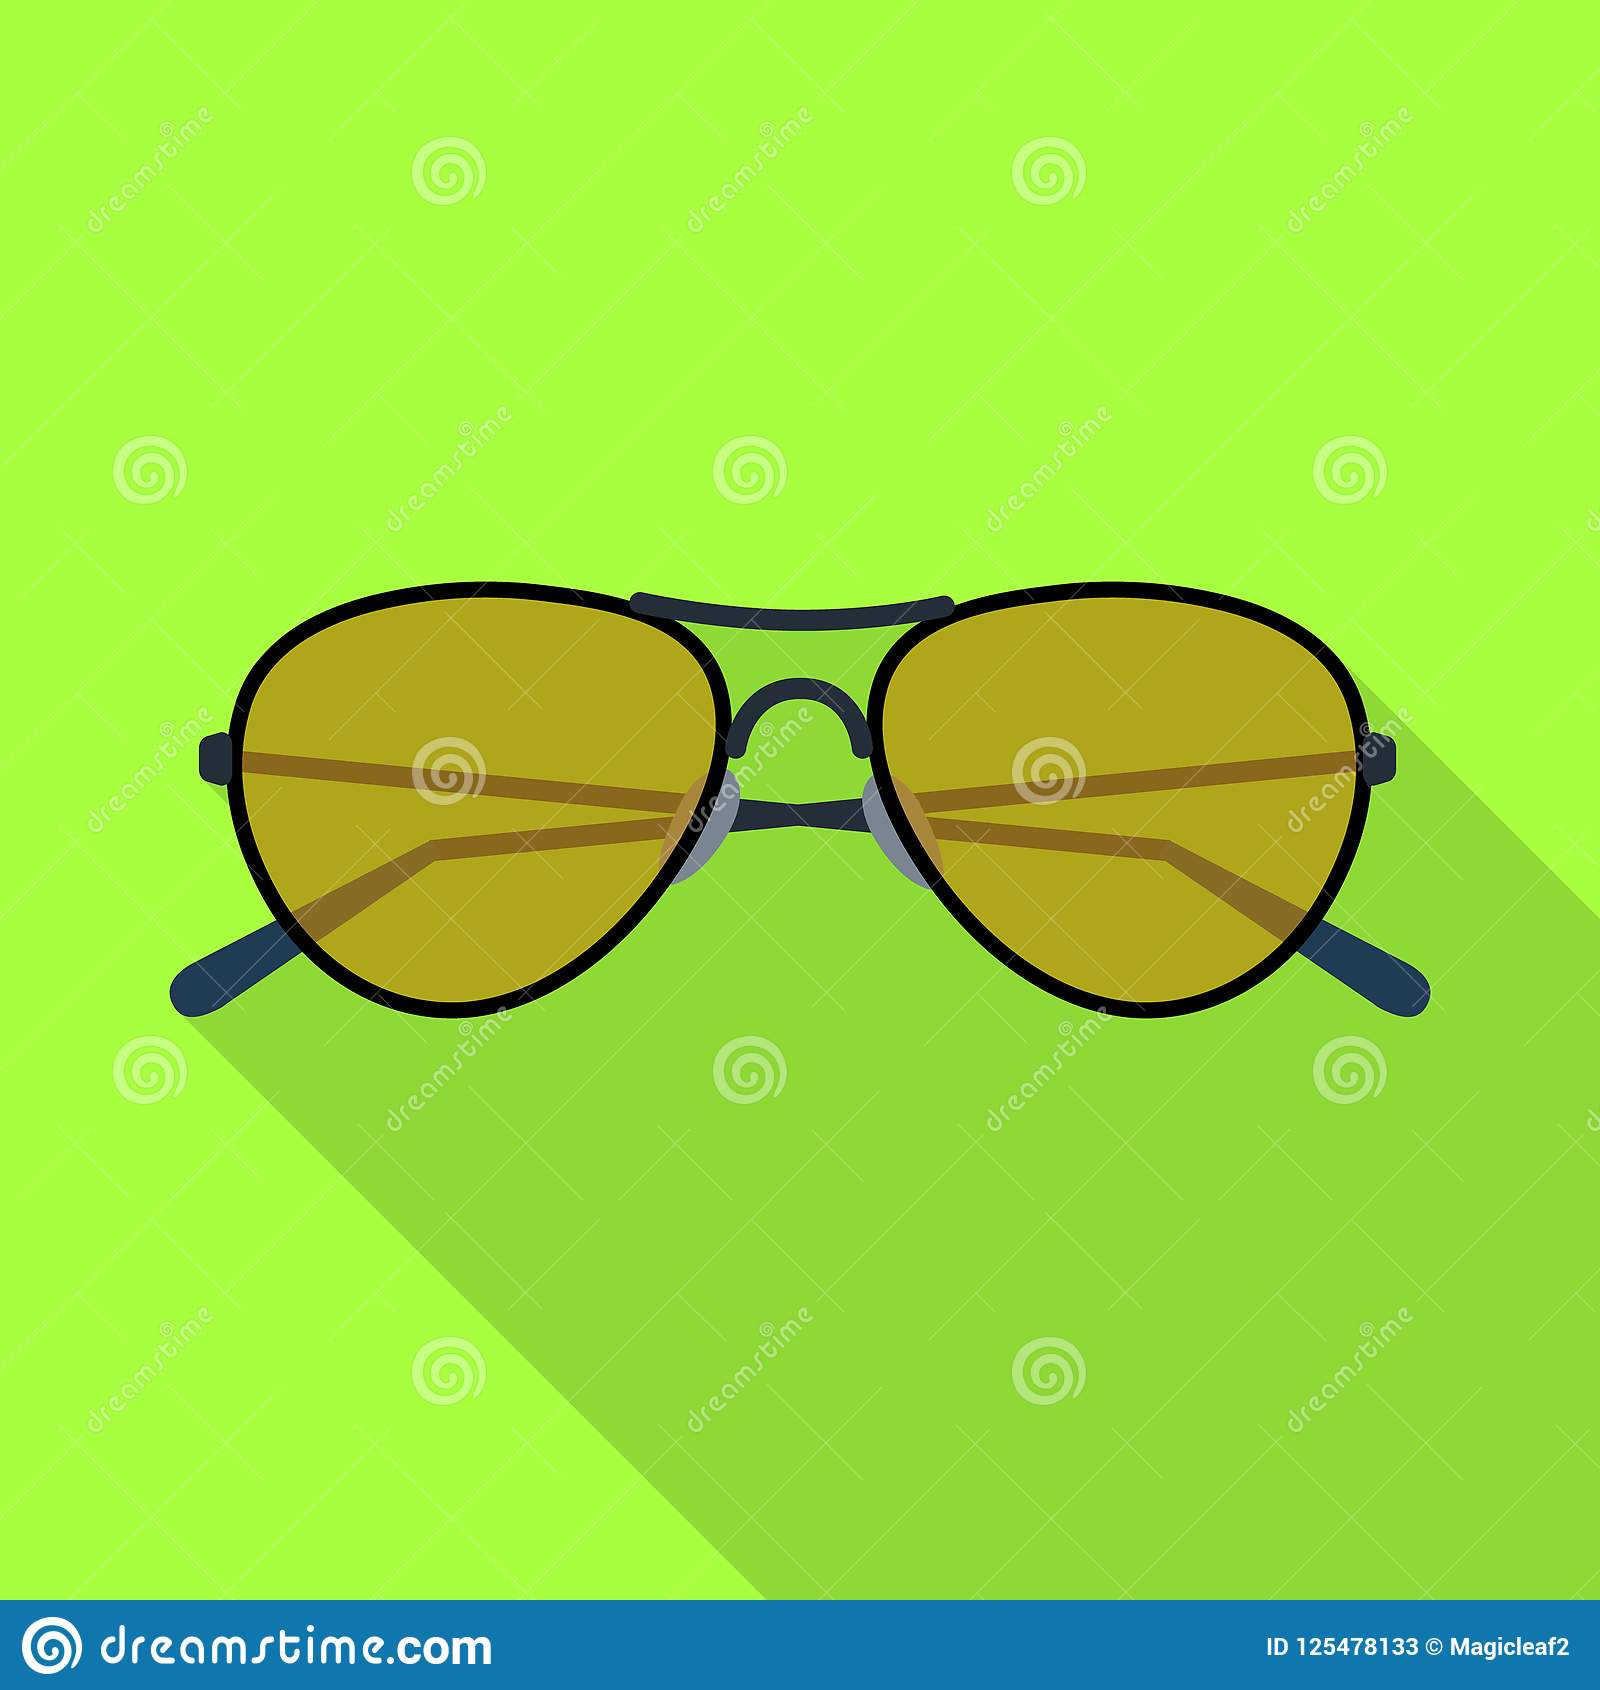 Isolated Object Of Glasses And Sunglasses Symbol Set Of Glasses And